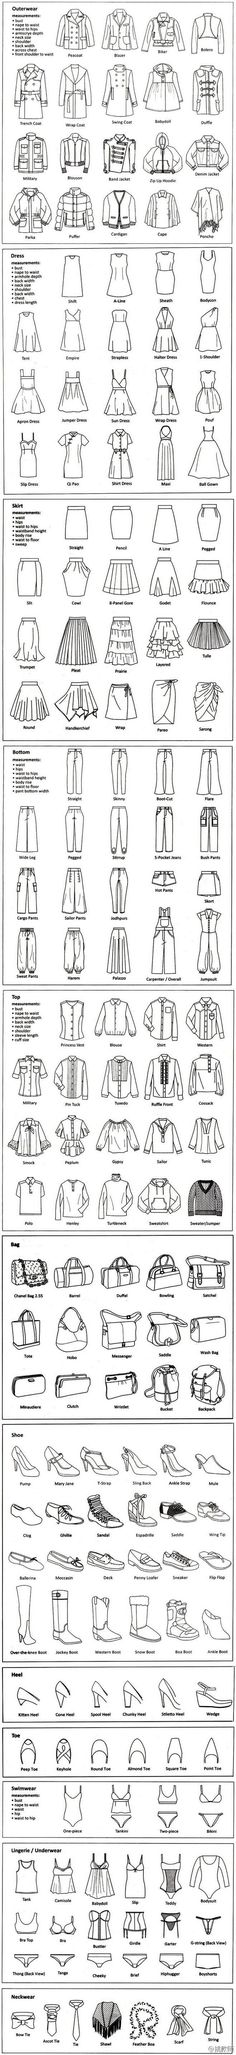 cool Garment Fashion Terminology | Fashion Design Sewing, Resources, Techniques, and ... by http://www.redfashiontrends.us/fashion-sketches/garment-fashion-terminology-fashion-design-sewing-resources-techniques-and/ #FashionDesignSketches